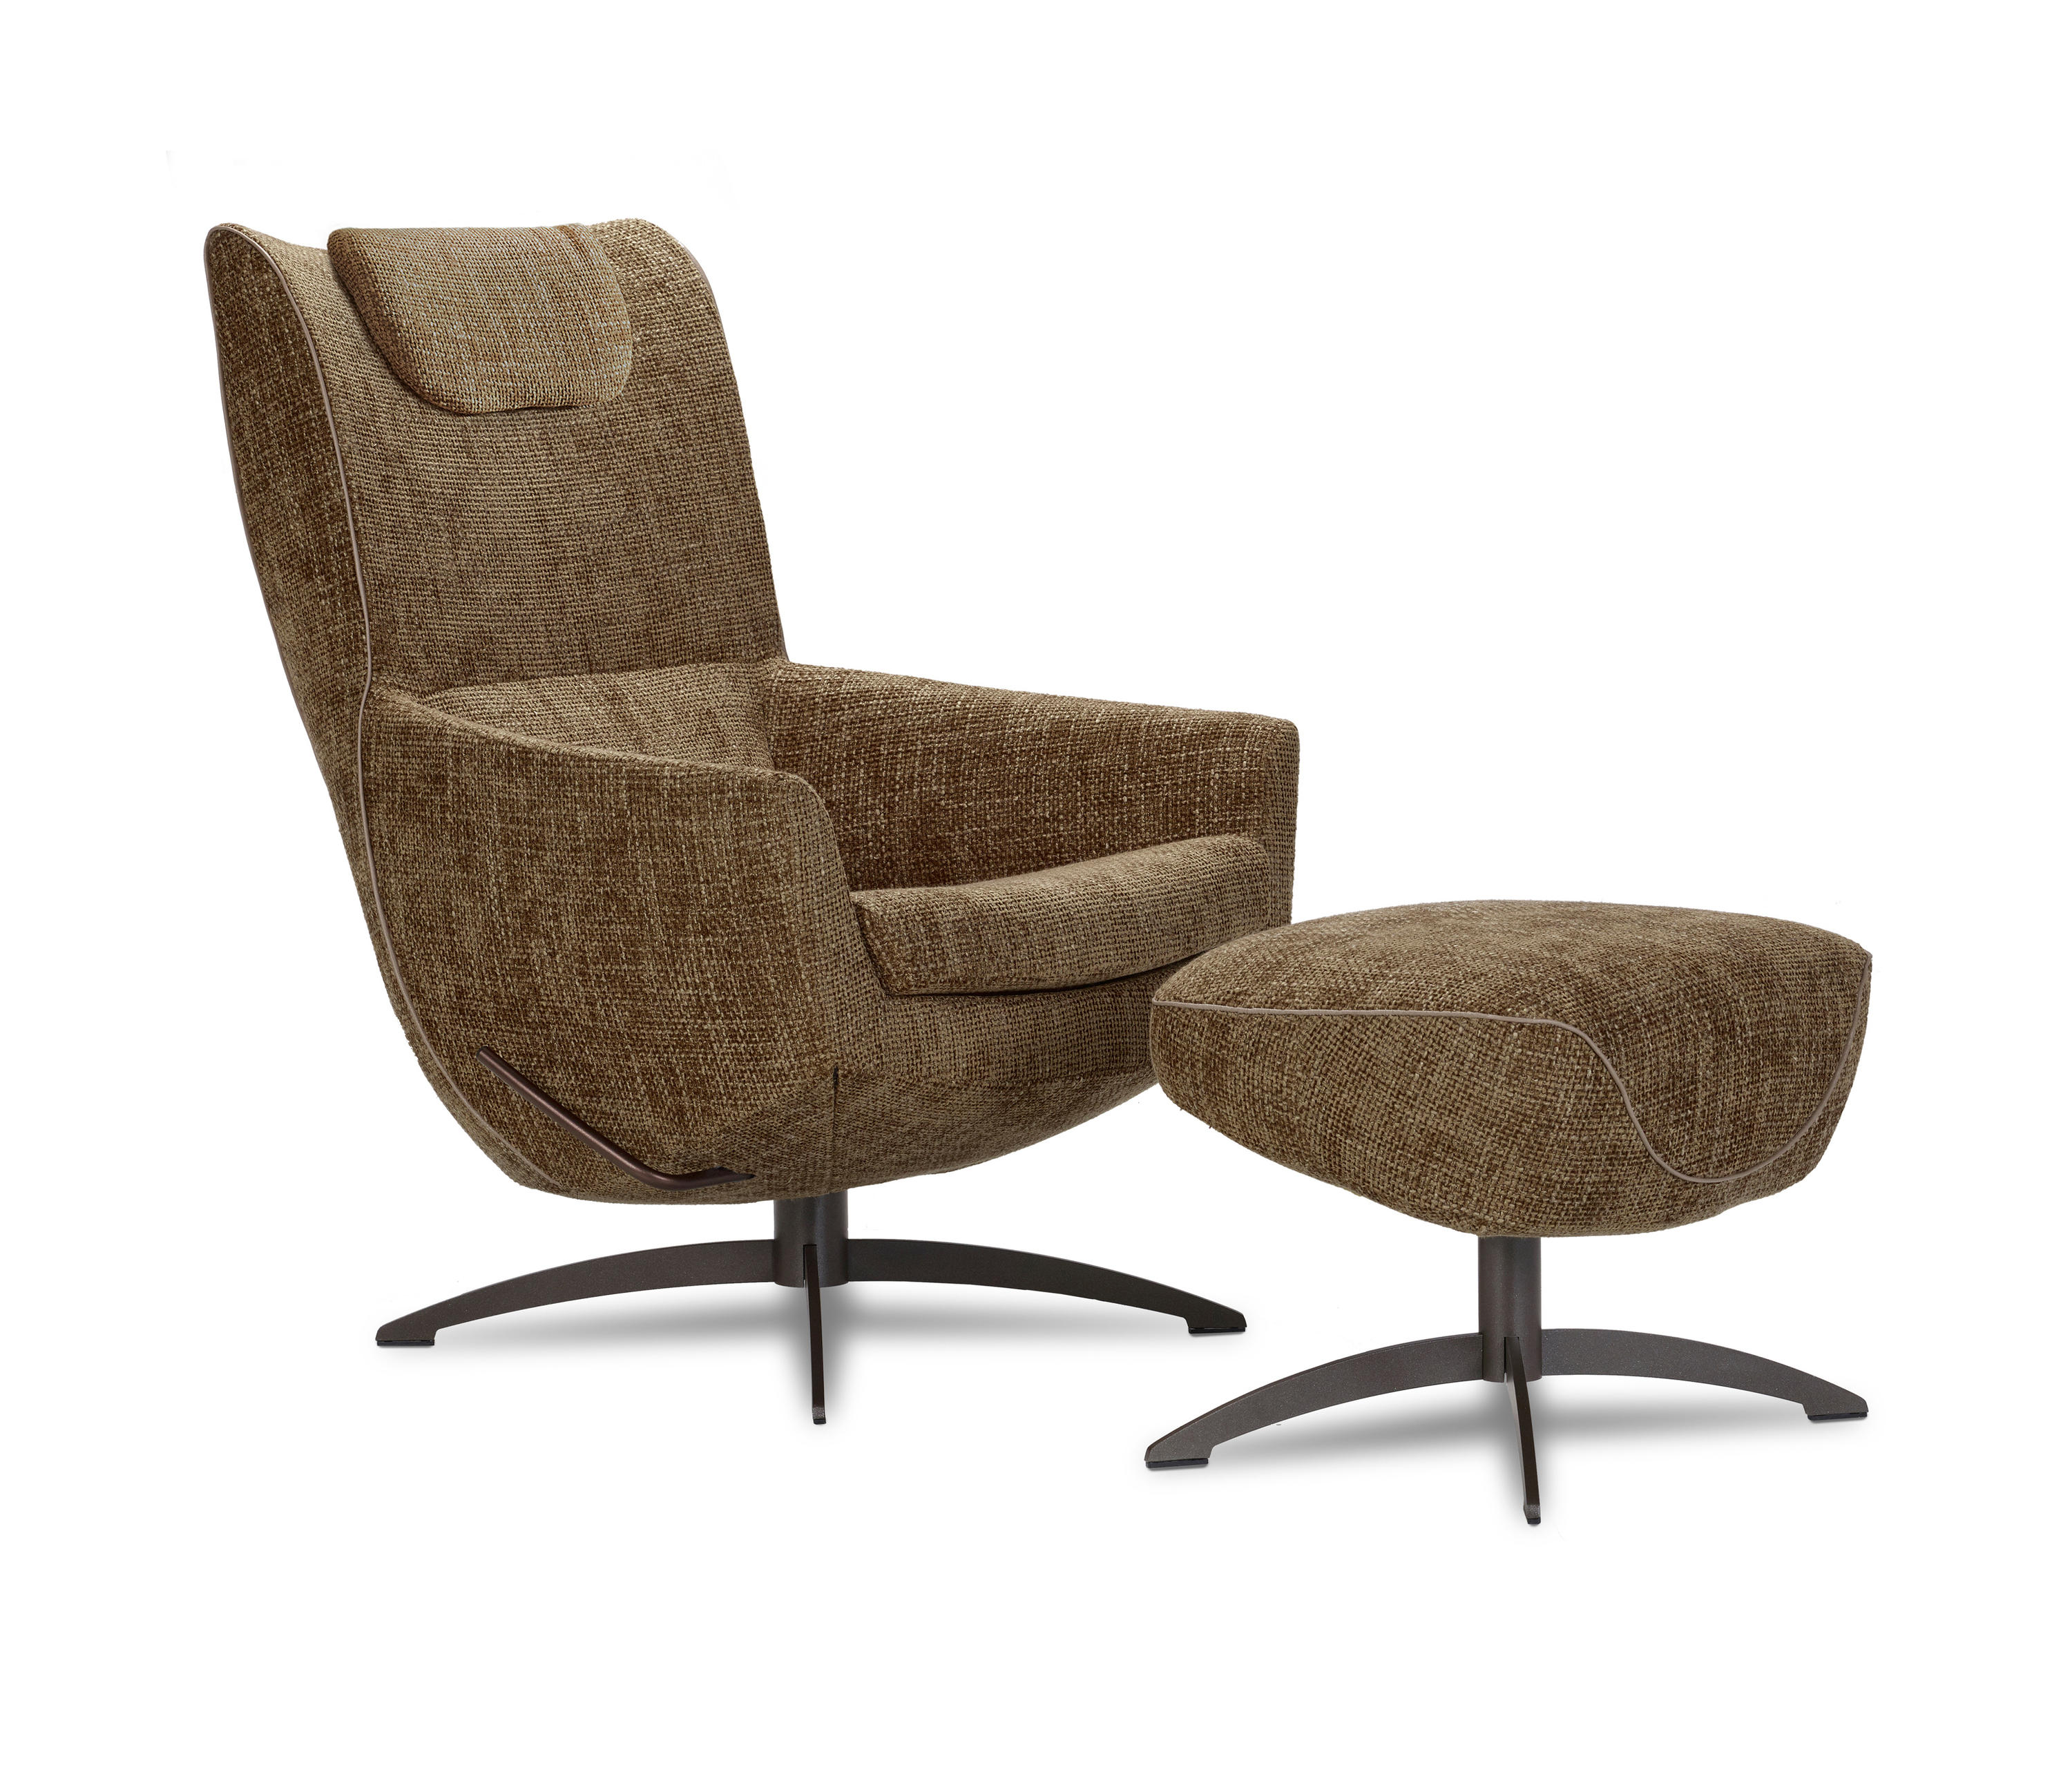 Jori Sessel Griffon Lounge Sessel Von Jori Architonic